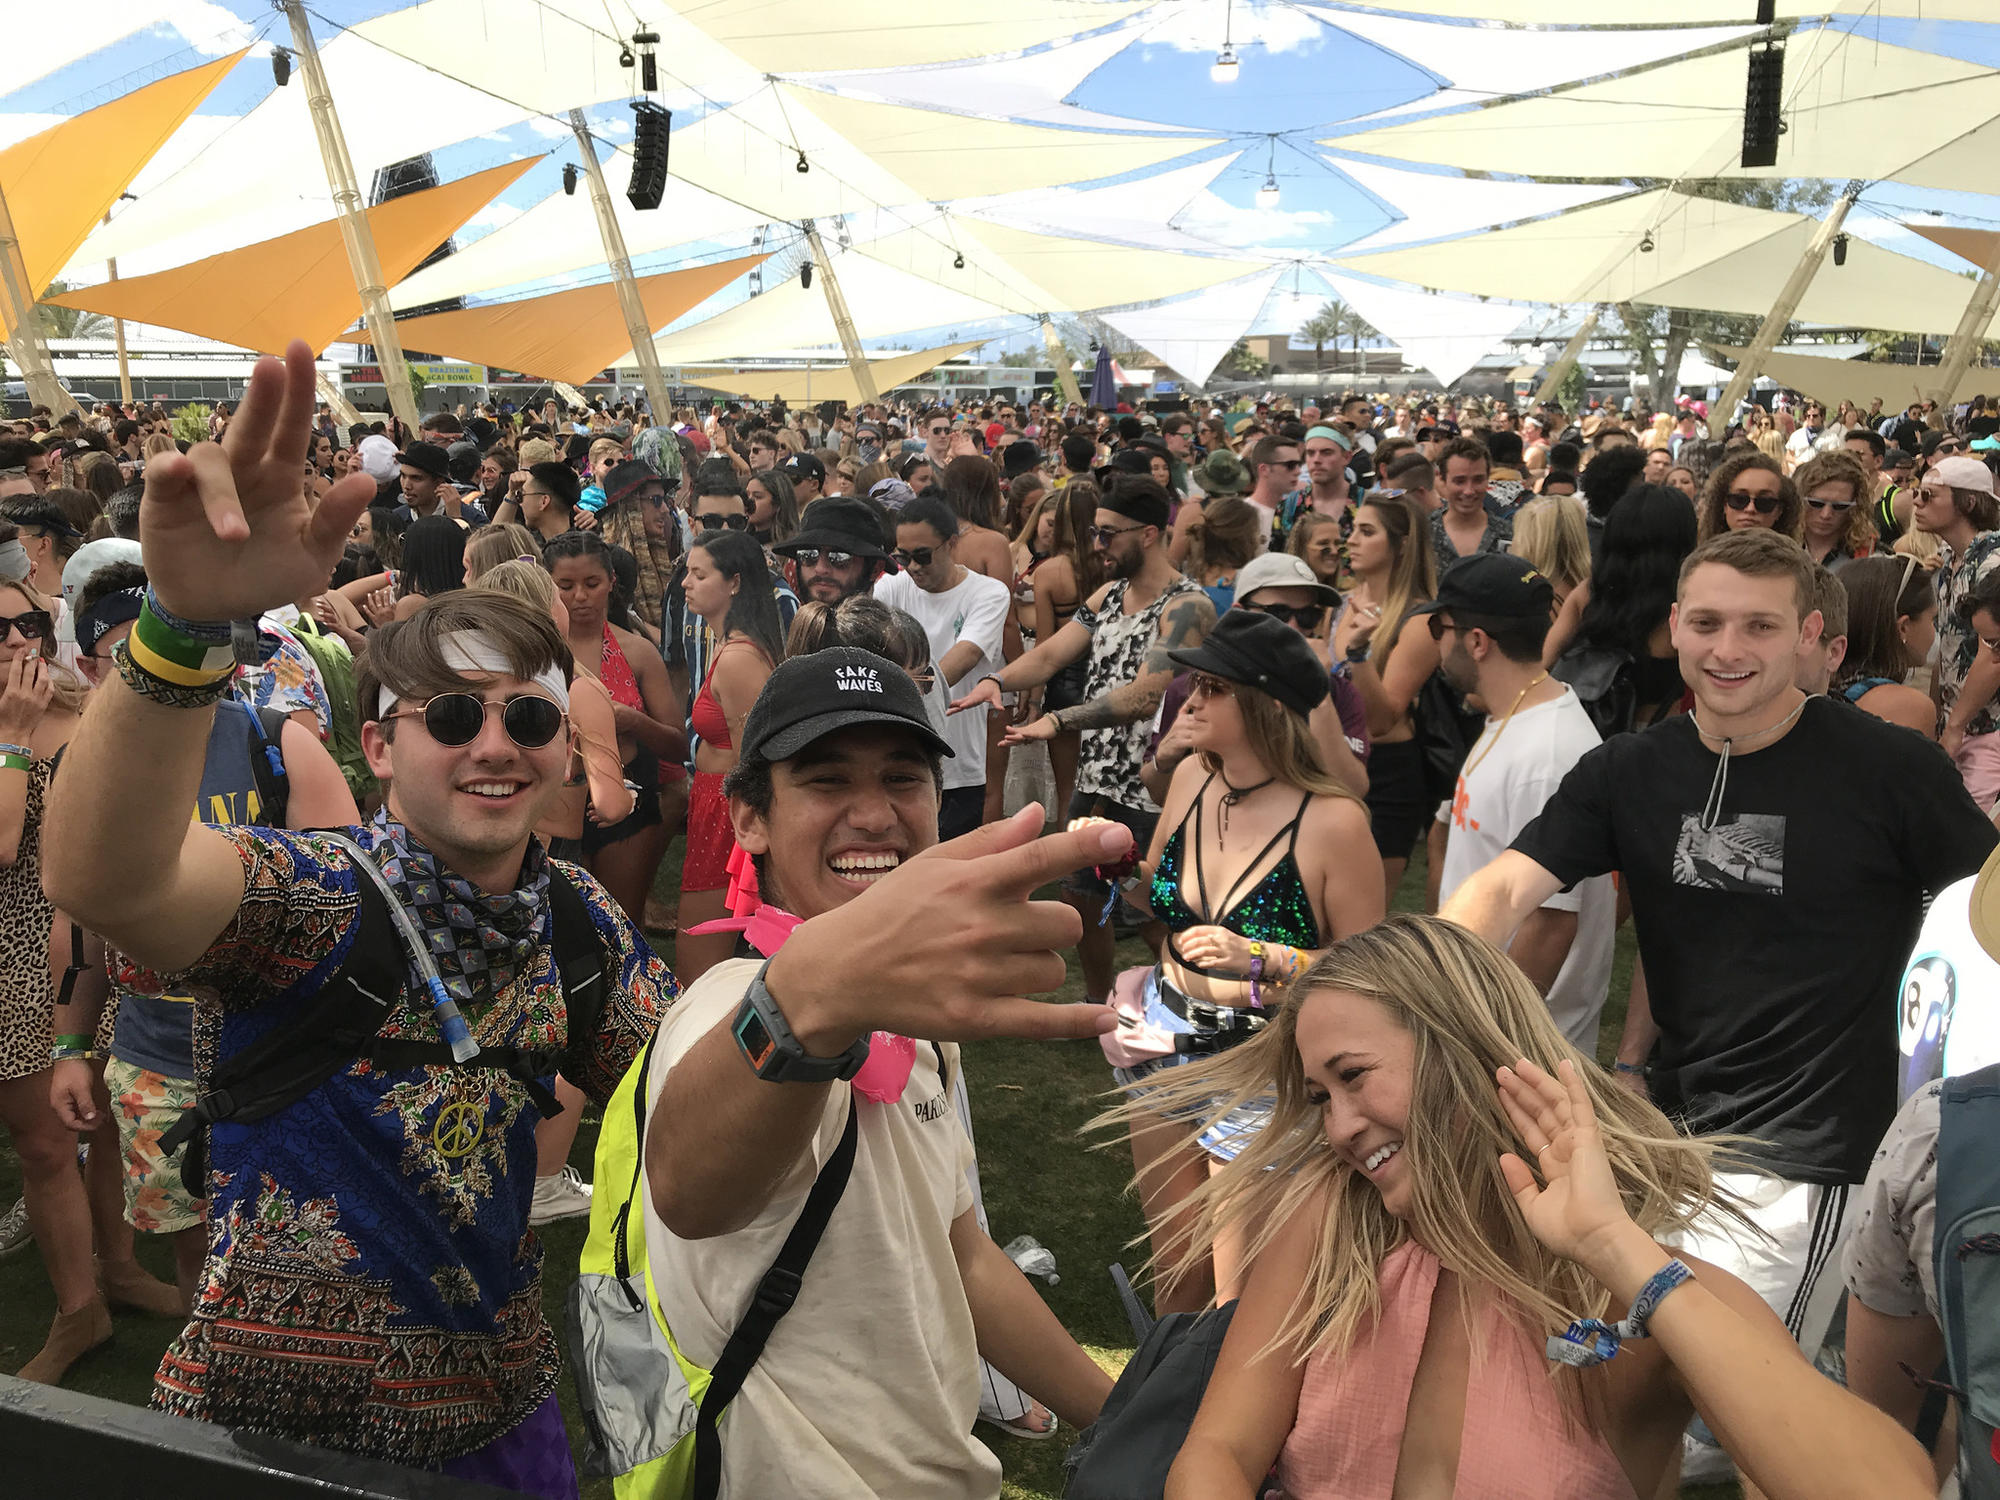 ICYMI: Scenes from week one of the Coachella Valley Music and Arts